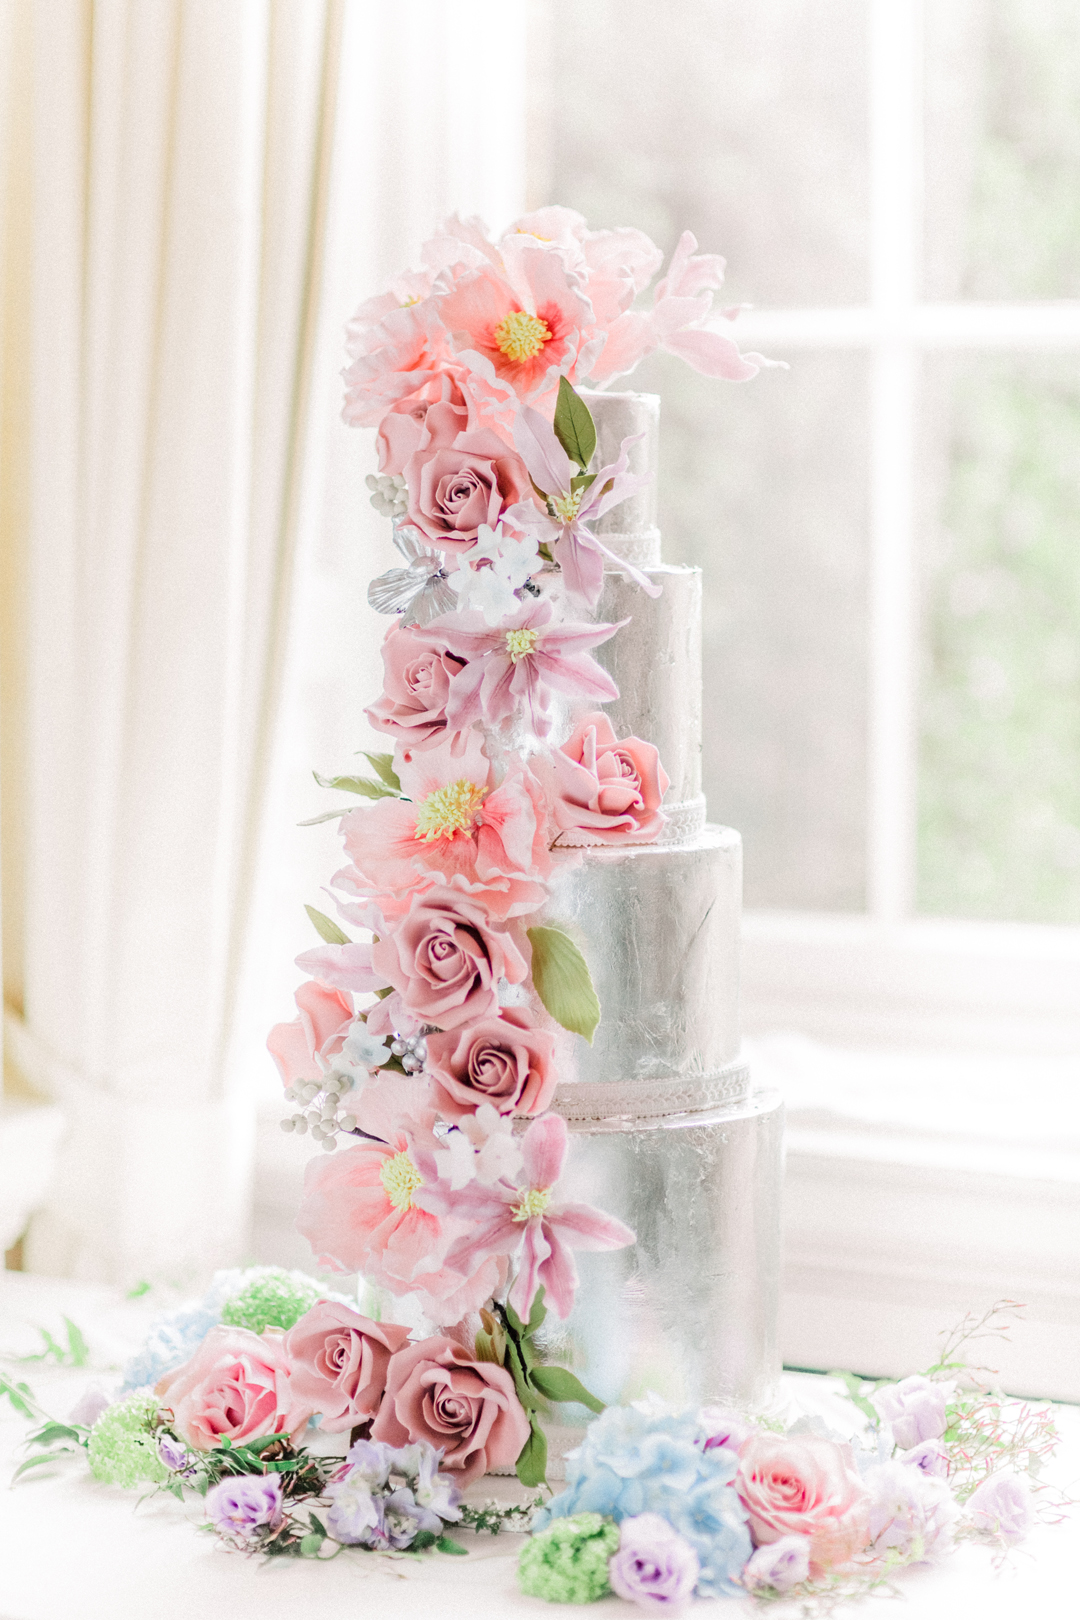 For a show stopping piece this all silver 4 tiered cake with gorgeous pink sugar flowers is the perfect colour combination. Cake by Elizabeth's Cake Emporium. Image: Sanshine Photography